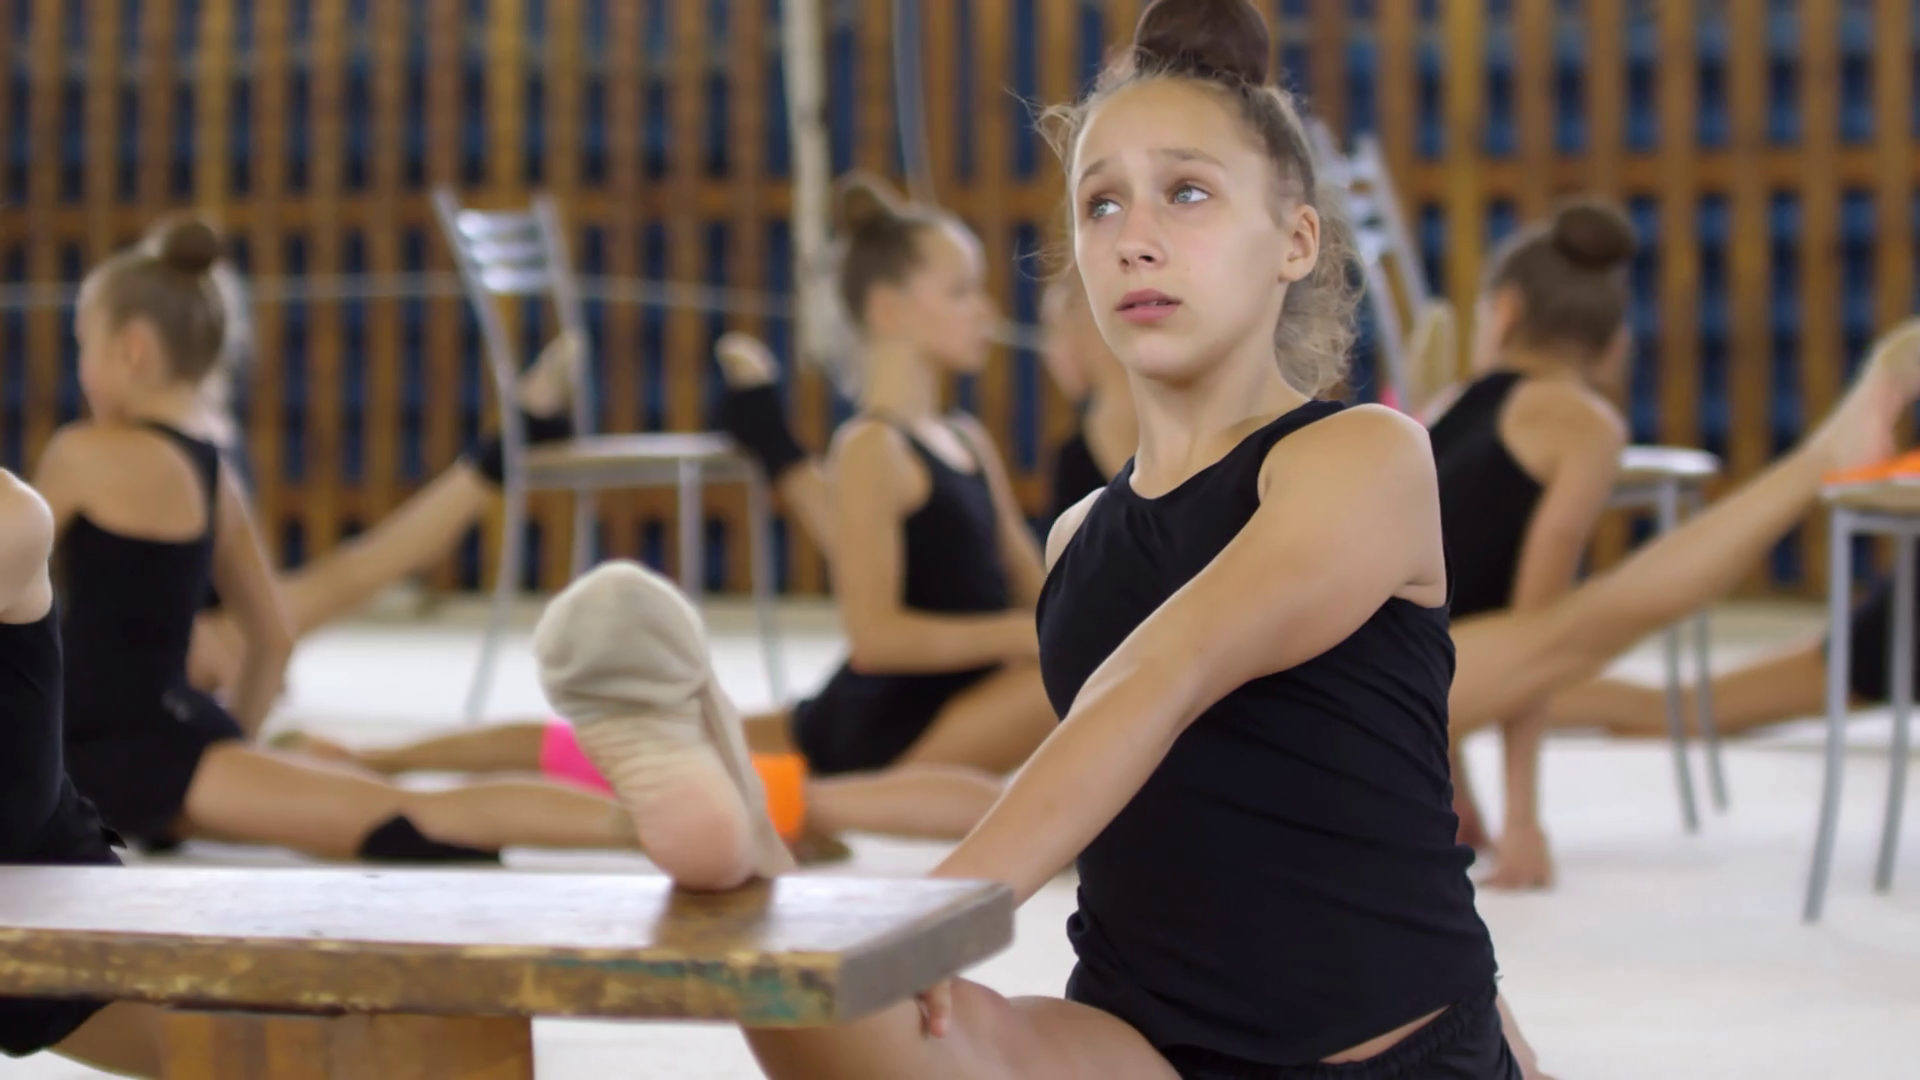 Tracking shot of group of young girls of elementary school age having gymnastics lesson and practicing front splits Stock Video Footage - Storyblocks